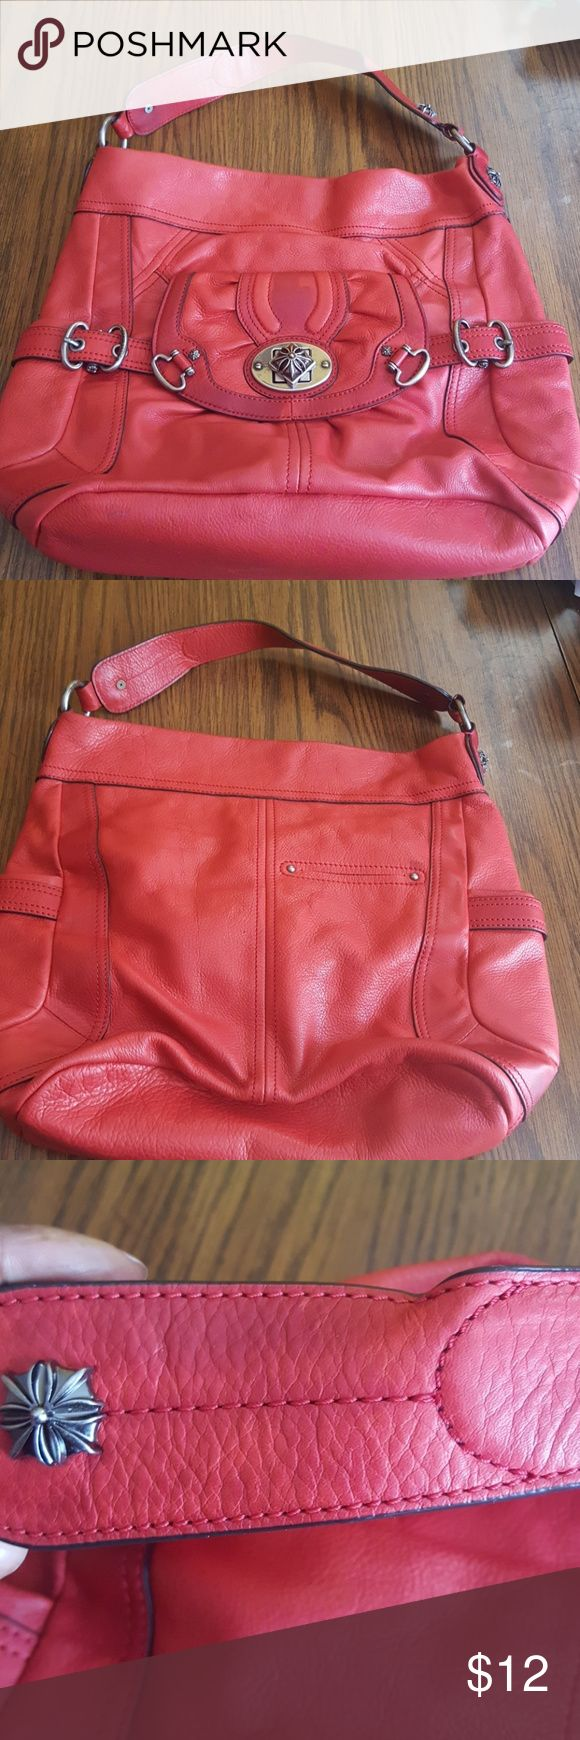 B makowsky handbag B Makowsky handbag in good condition. Has some water marks on it but doesn't affect the use of the bag. Inside is clean, no holes,rips, or tear.please examine all the pics those r where the water marks are. B Makowsky Bags Totes